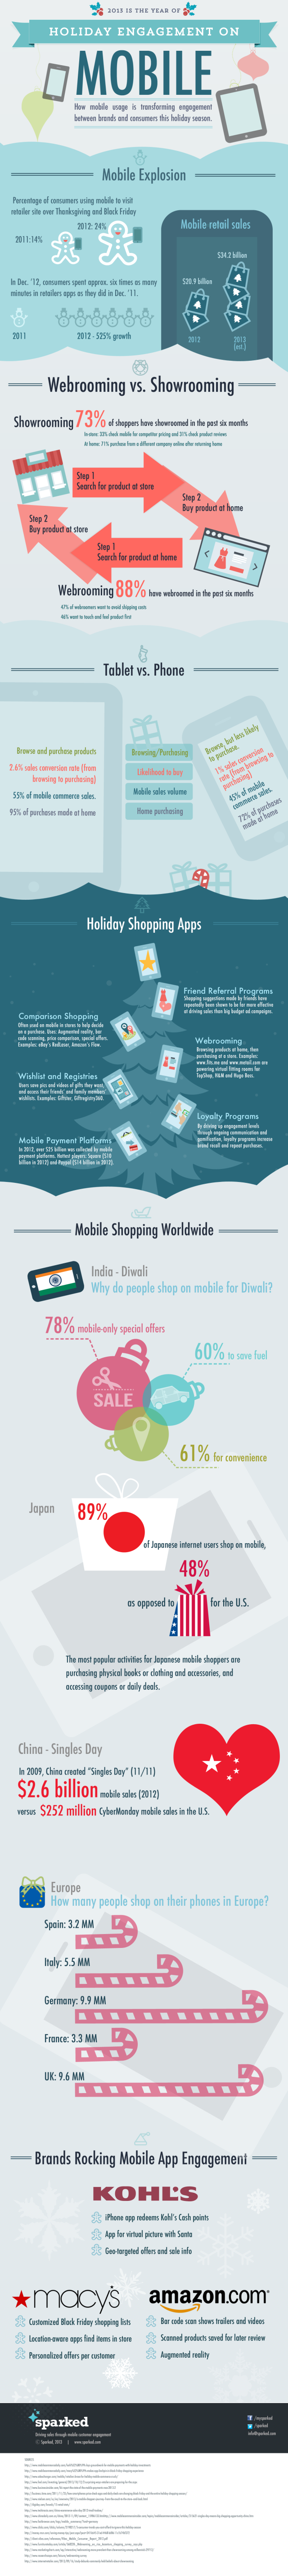 infographic - Holiday Engagement goes Mobile in 2013